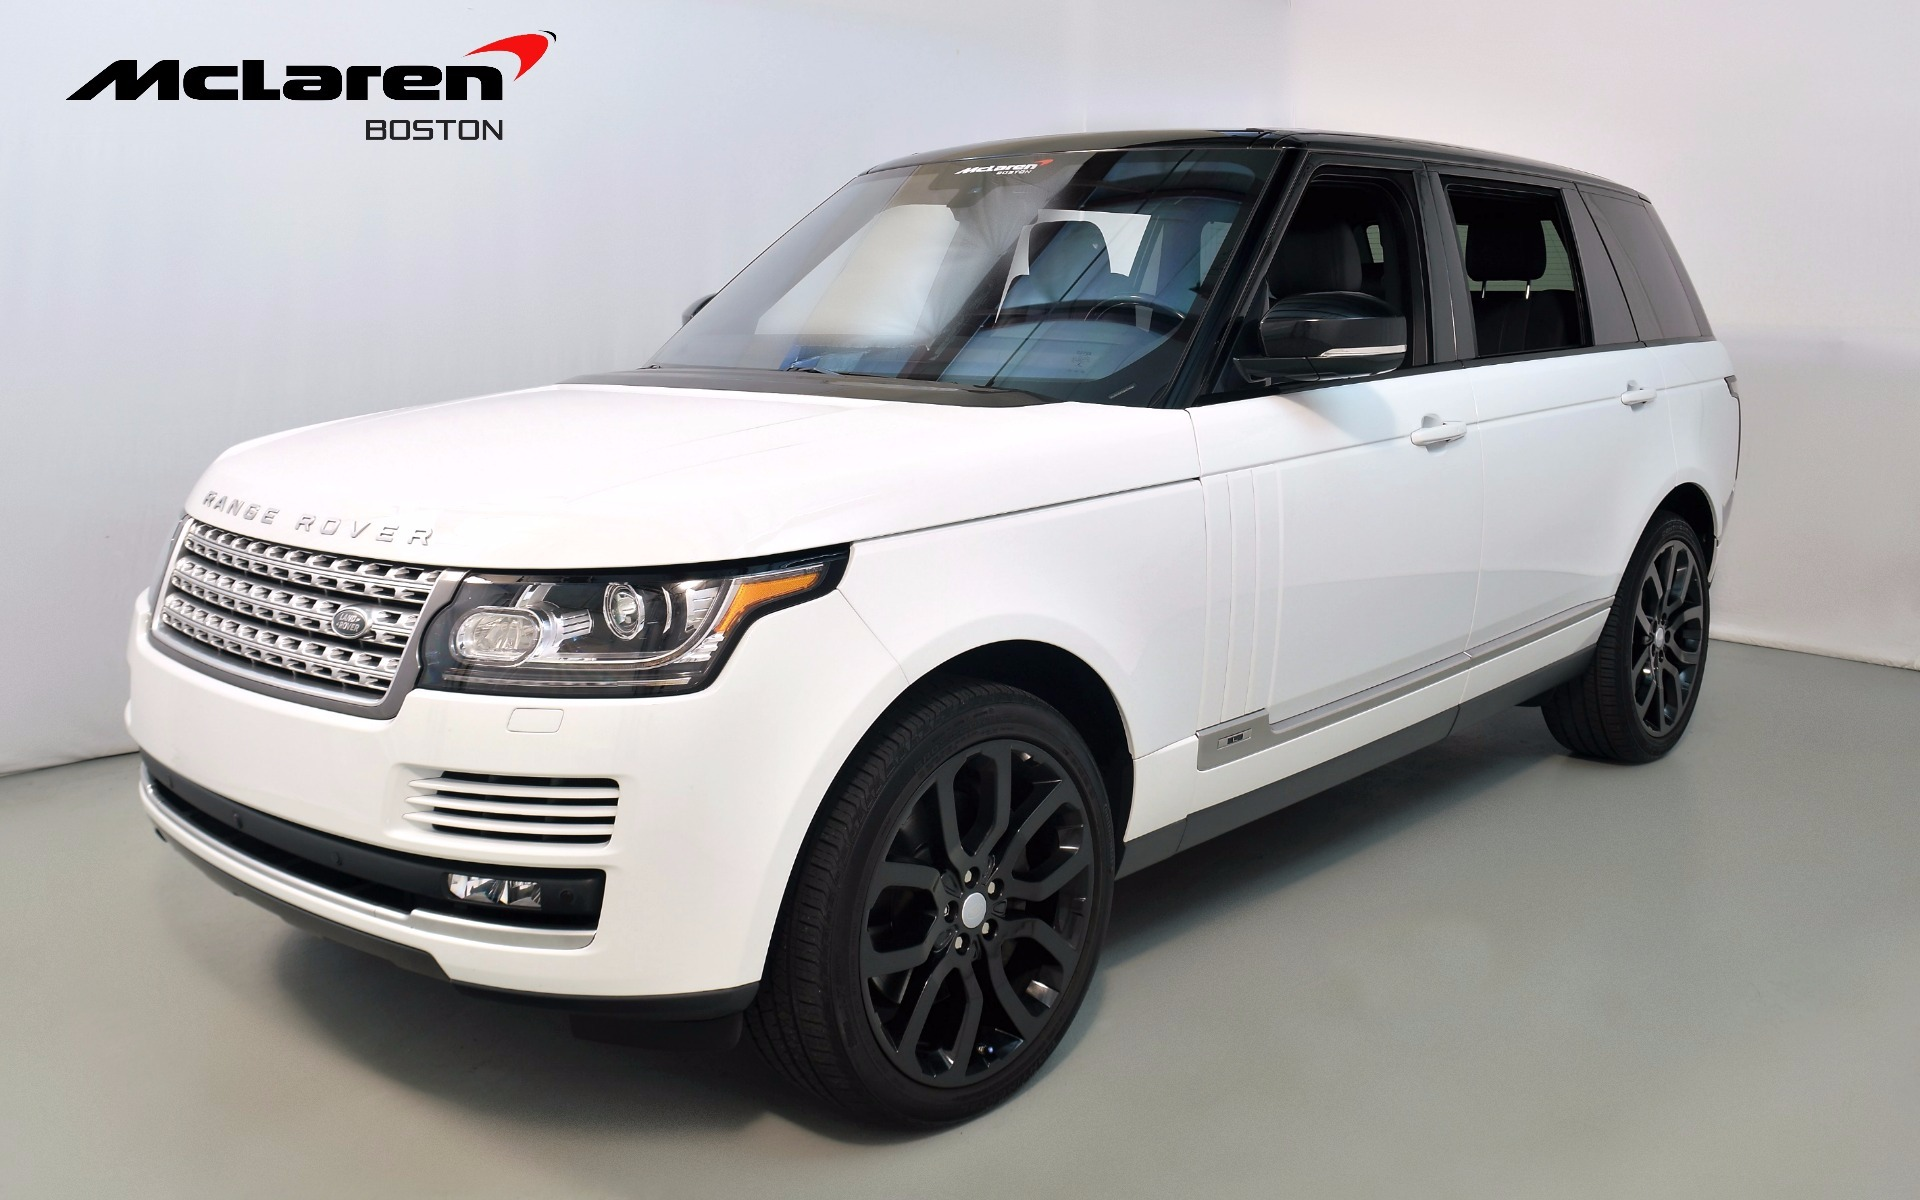 2016 land rover range rover supercharged for sale in norwell ma 278347 mclaren boston. Black Bedroom Furniture Sets. Home Design Ideas